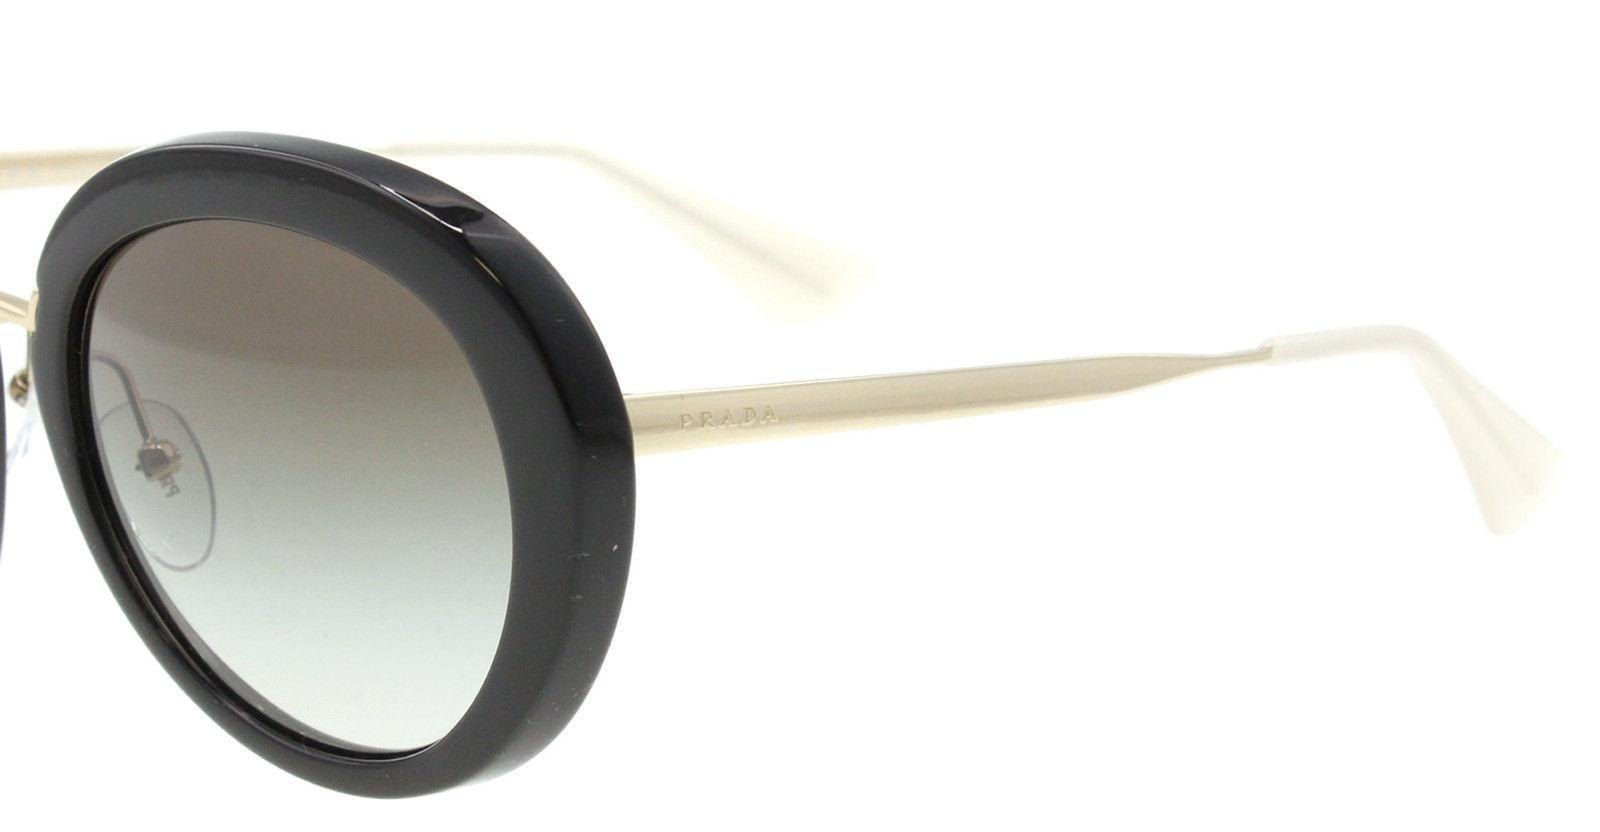 095d2a5cdf ... sweden prada prada sunglasses women spr 16q black 1ab 0a7 55mm italy.  123456 bee75 f7e13